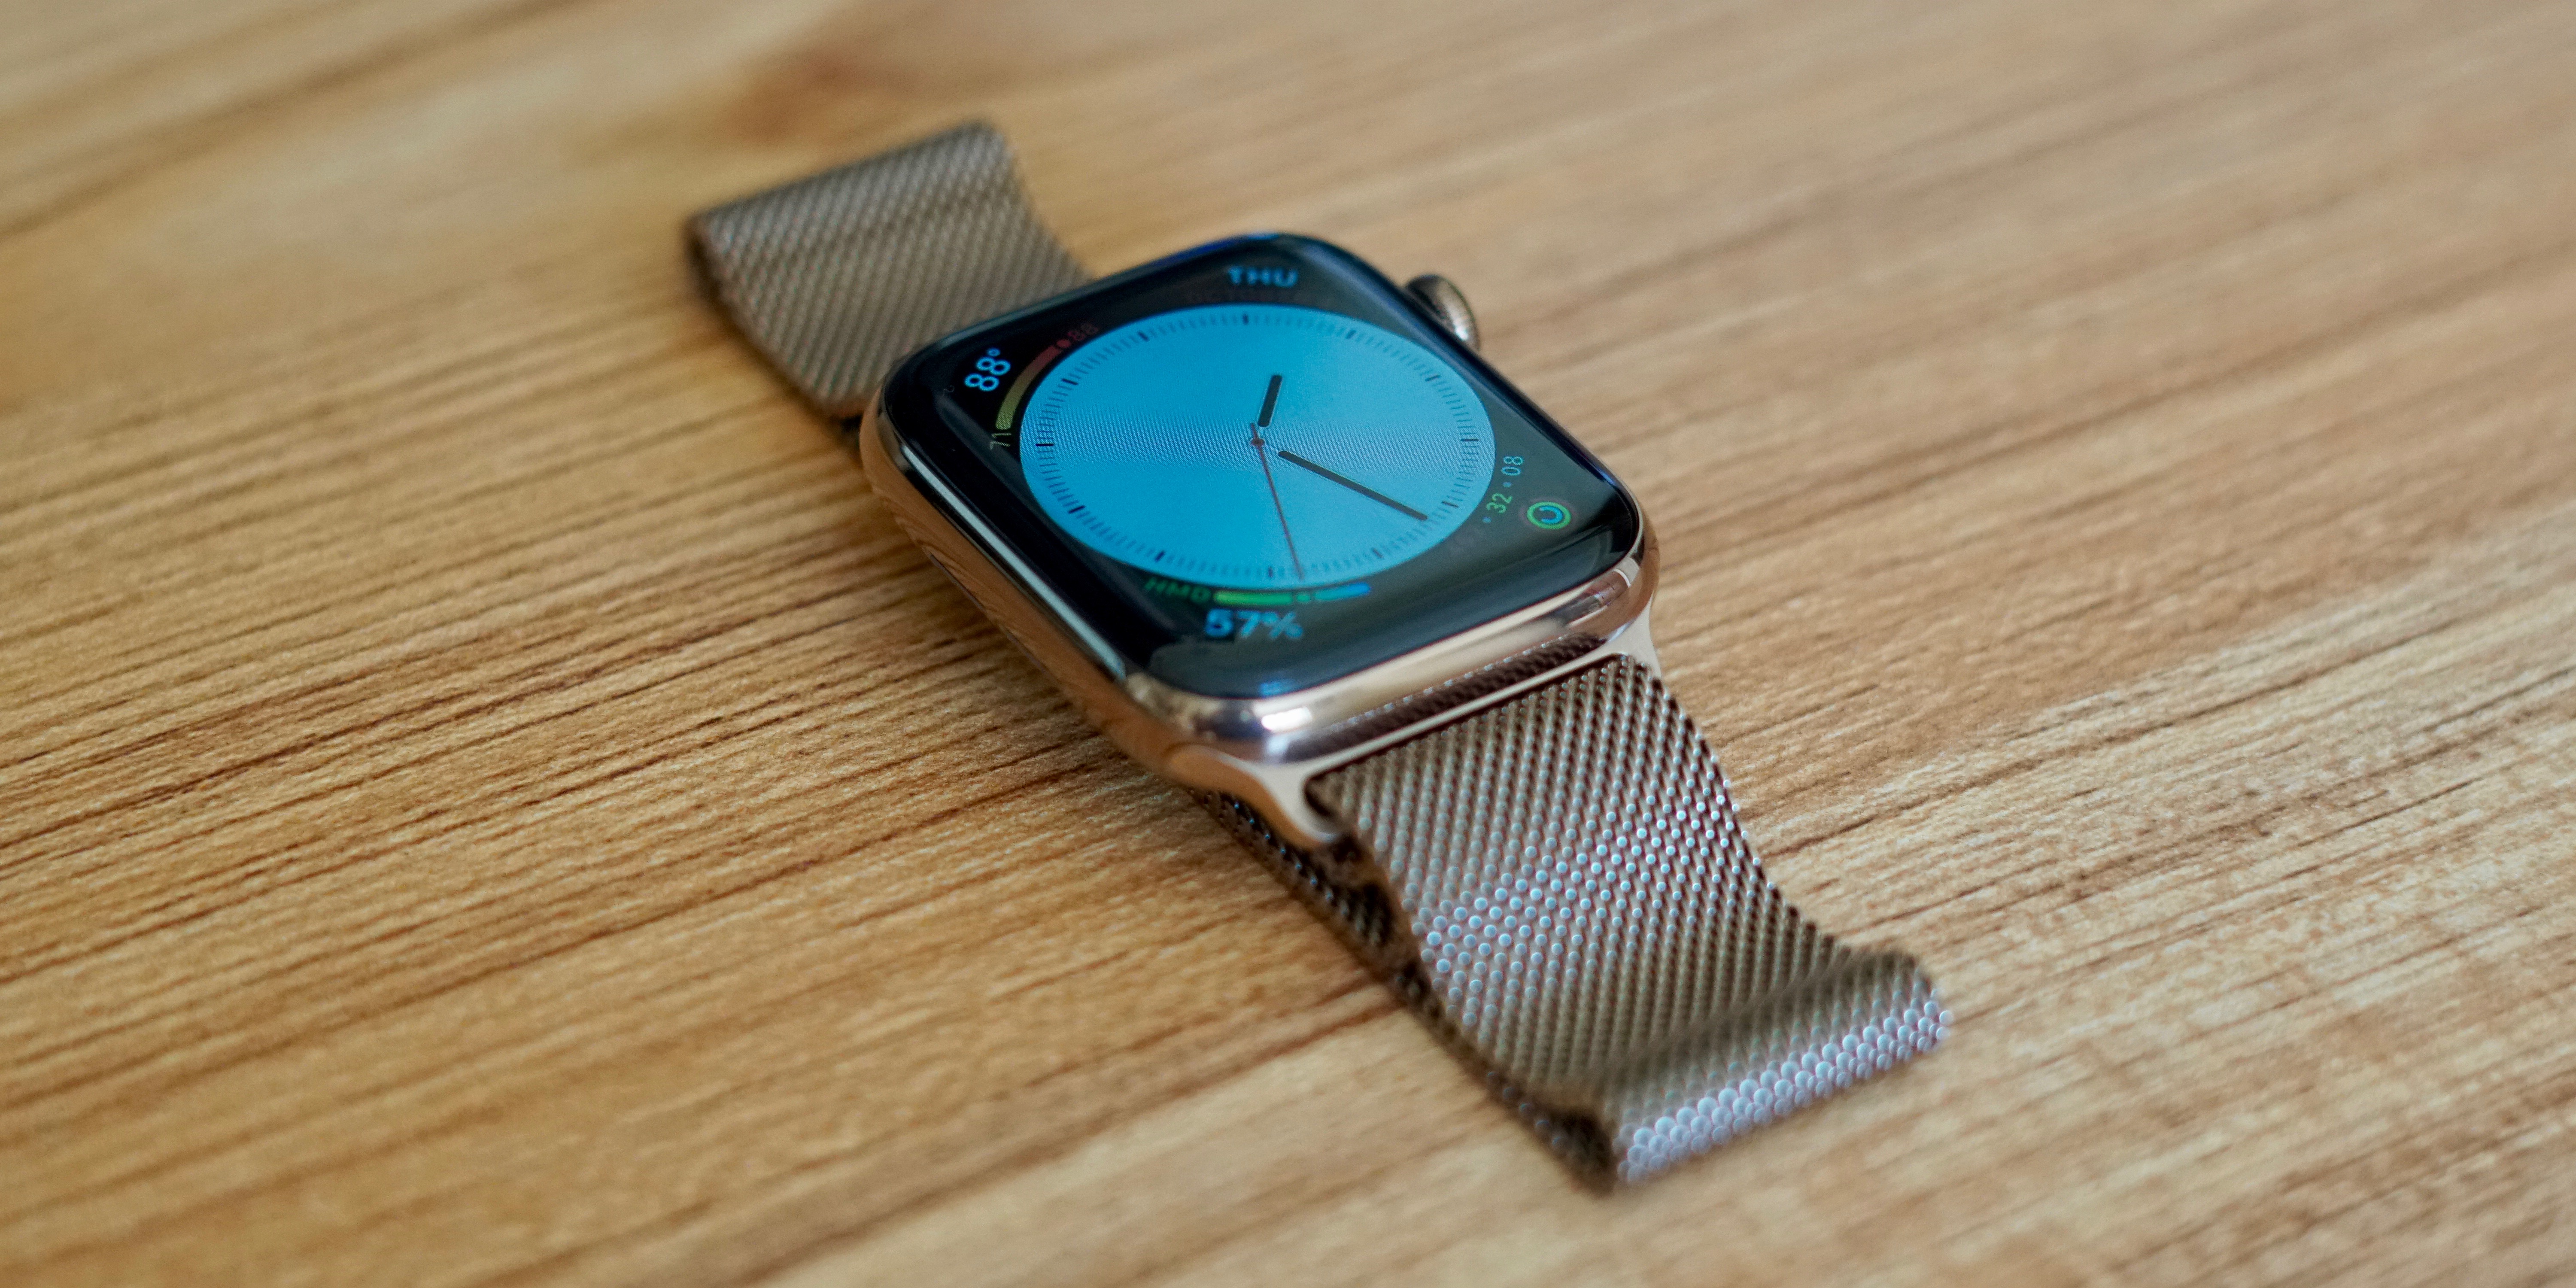 Apple Watch and fall detection credited with saving man in Sweden with acute back pain